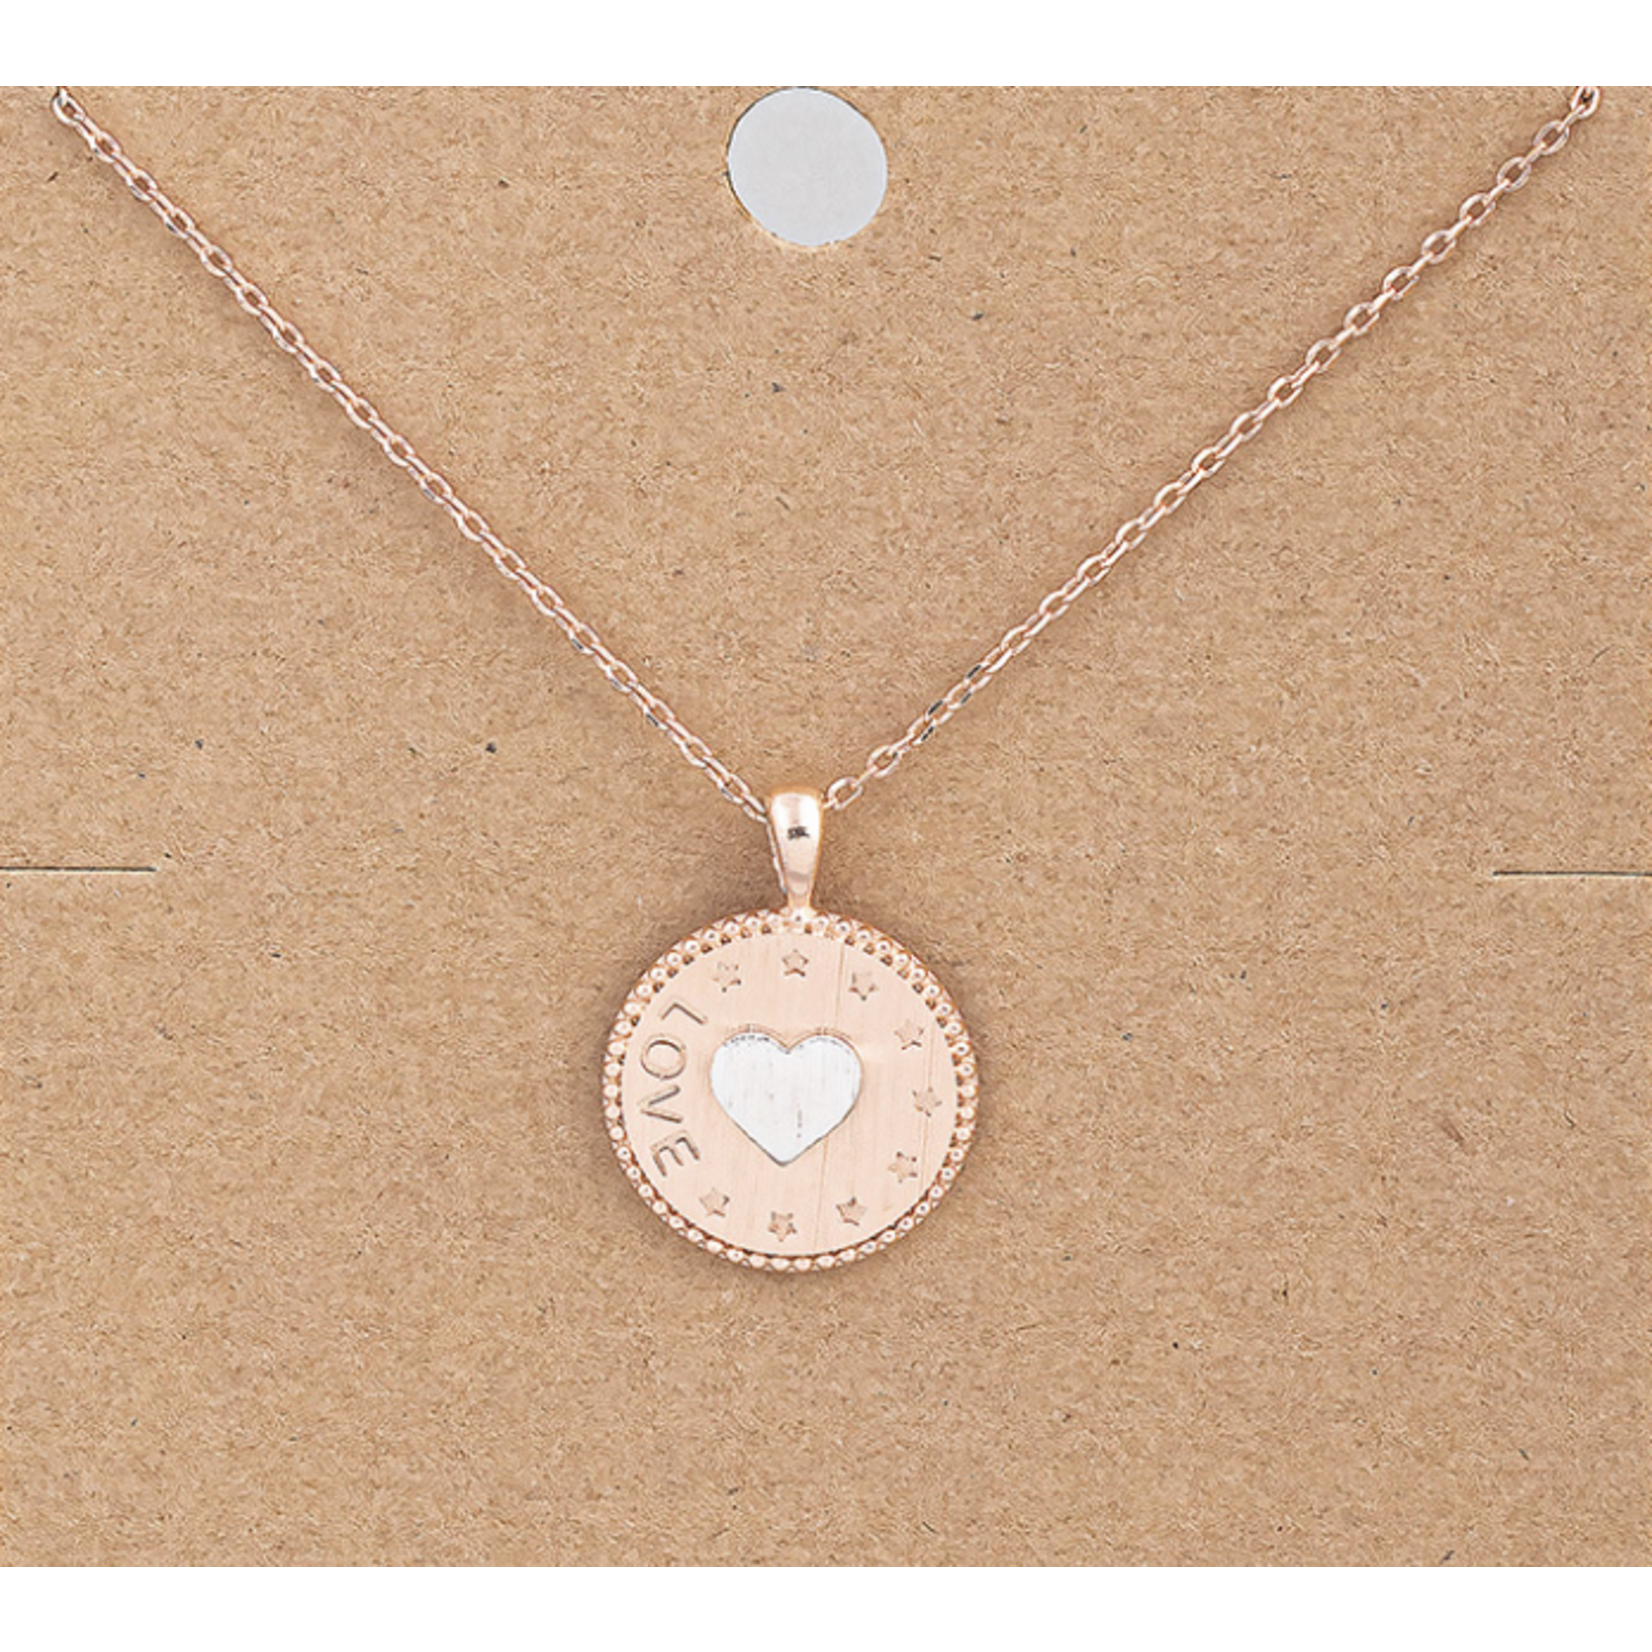 Necklace - Love Circle - Rose Gold Plated